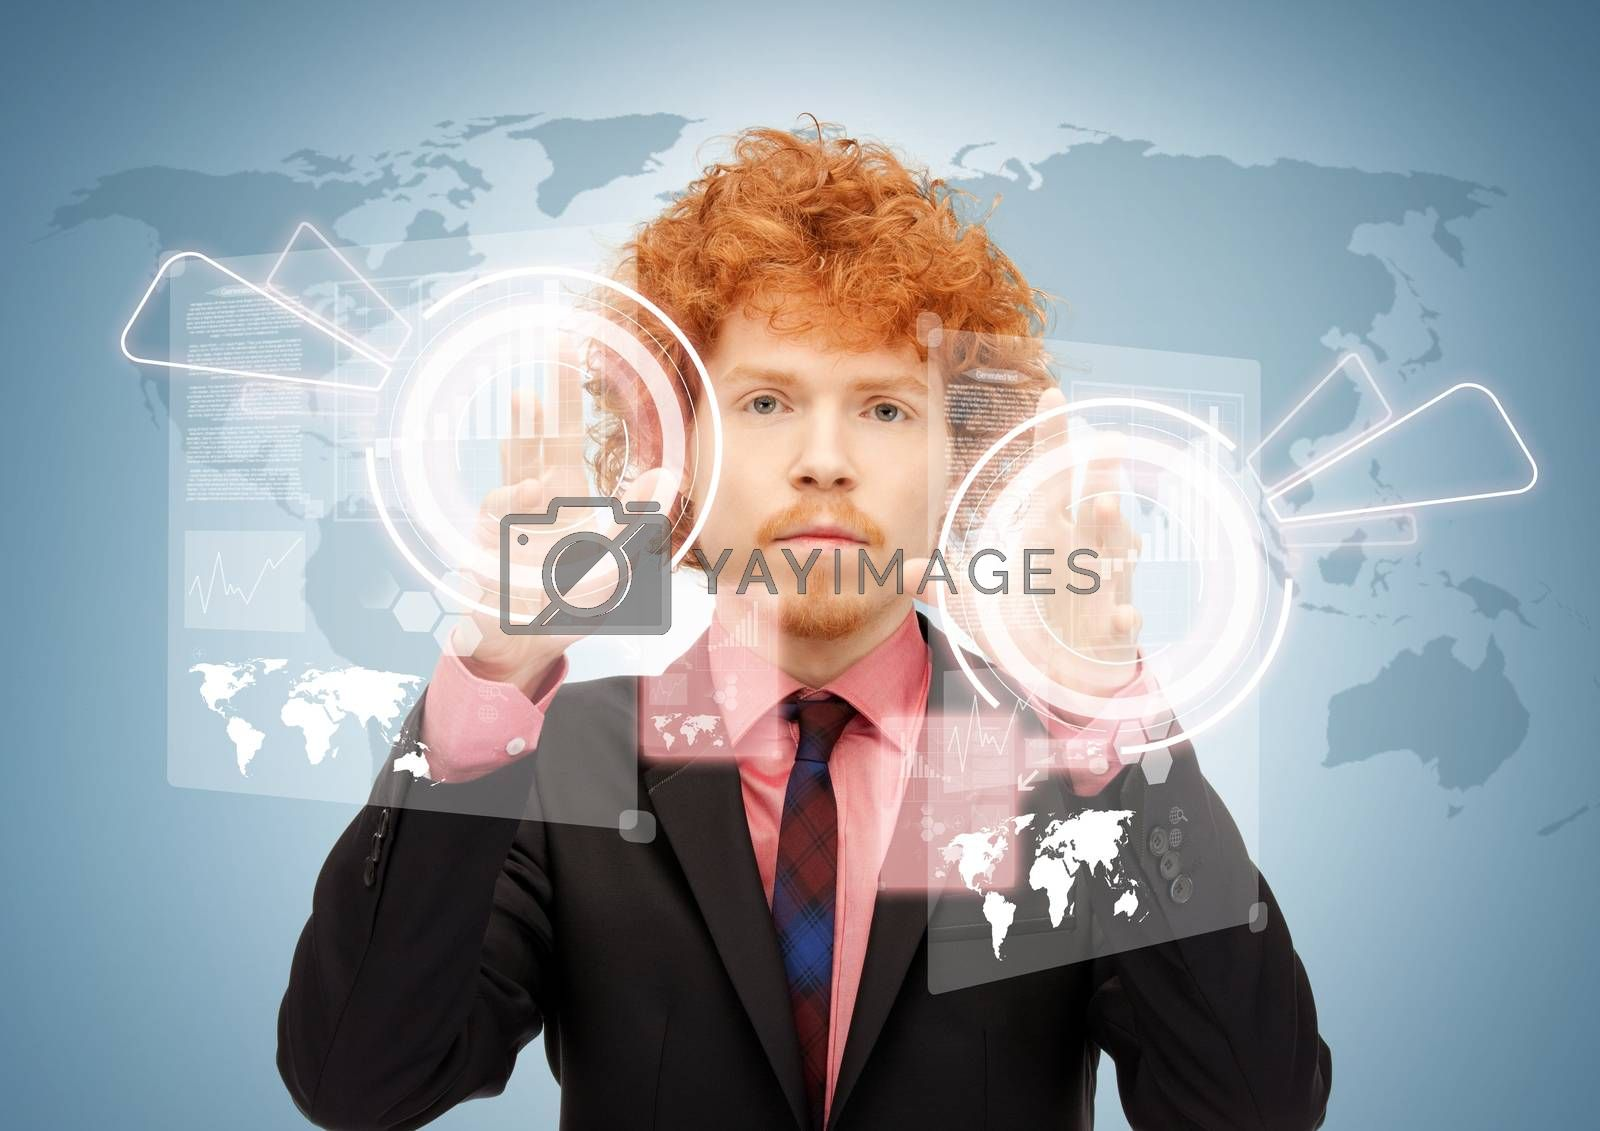 businessman touching virtual screen by dolgachov